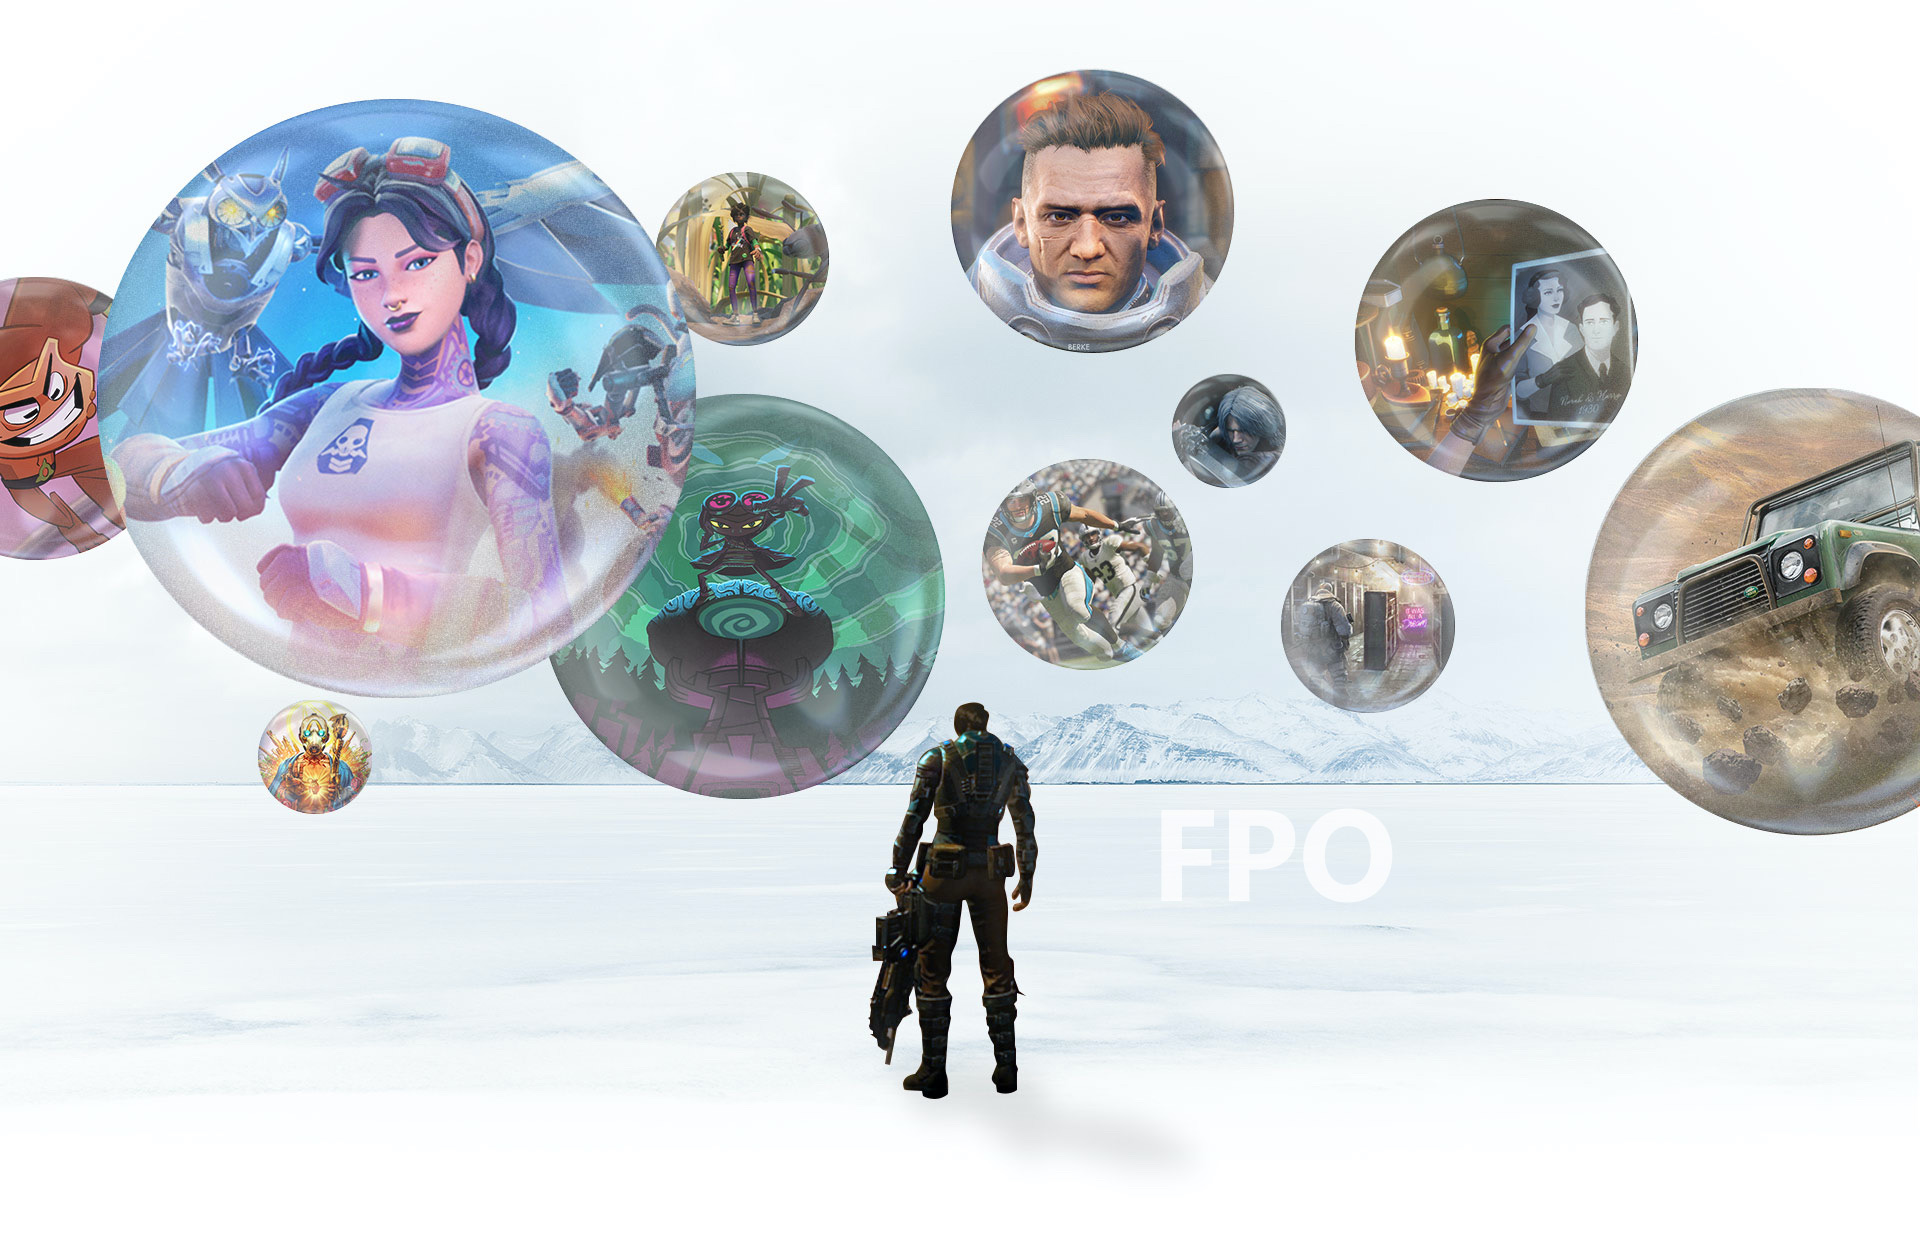 montage of a walkway with bubbles floating overhead containing images of Xbox characters